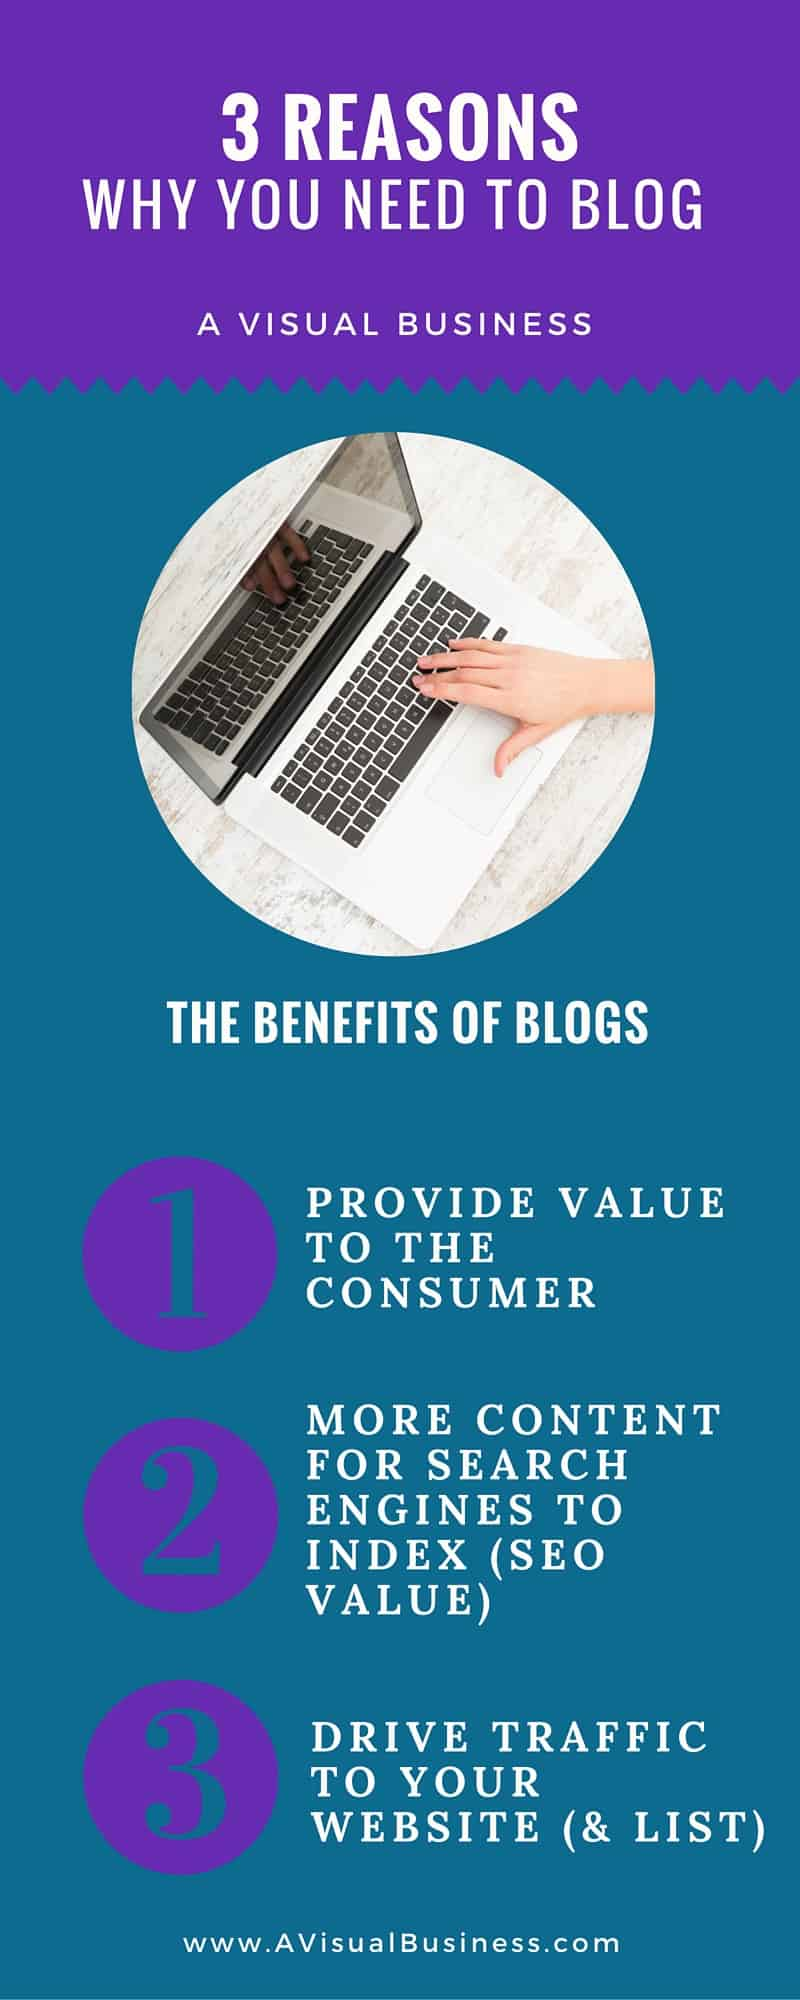 The 3 Benefits of blogging for your business